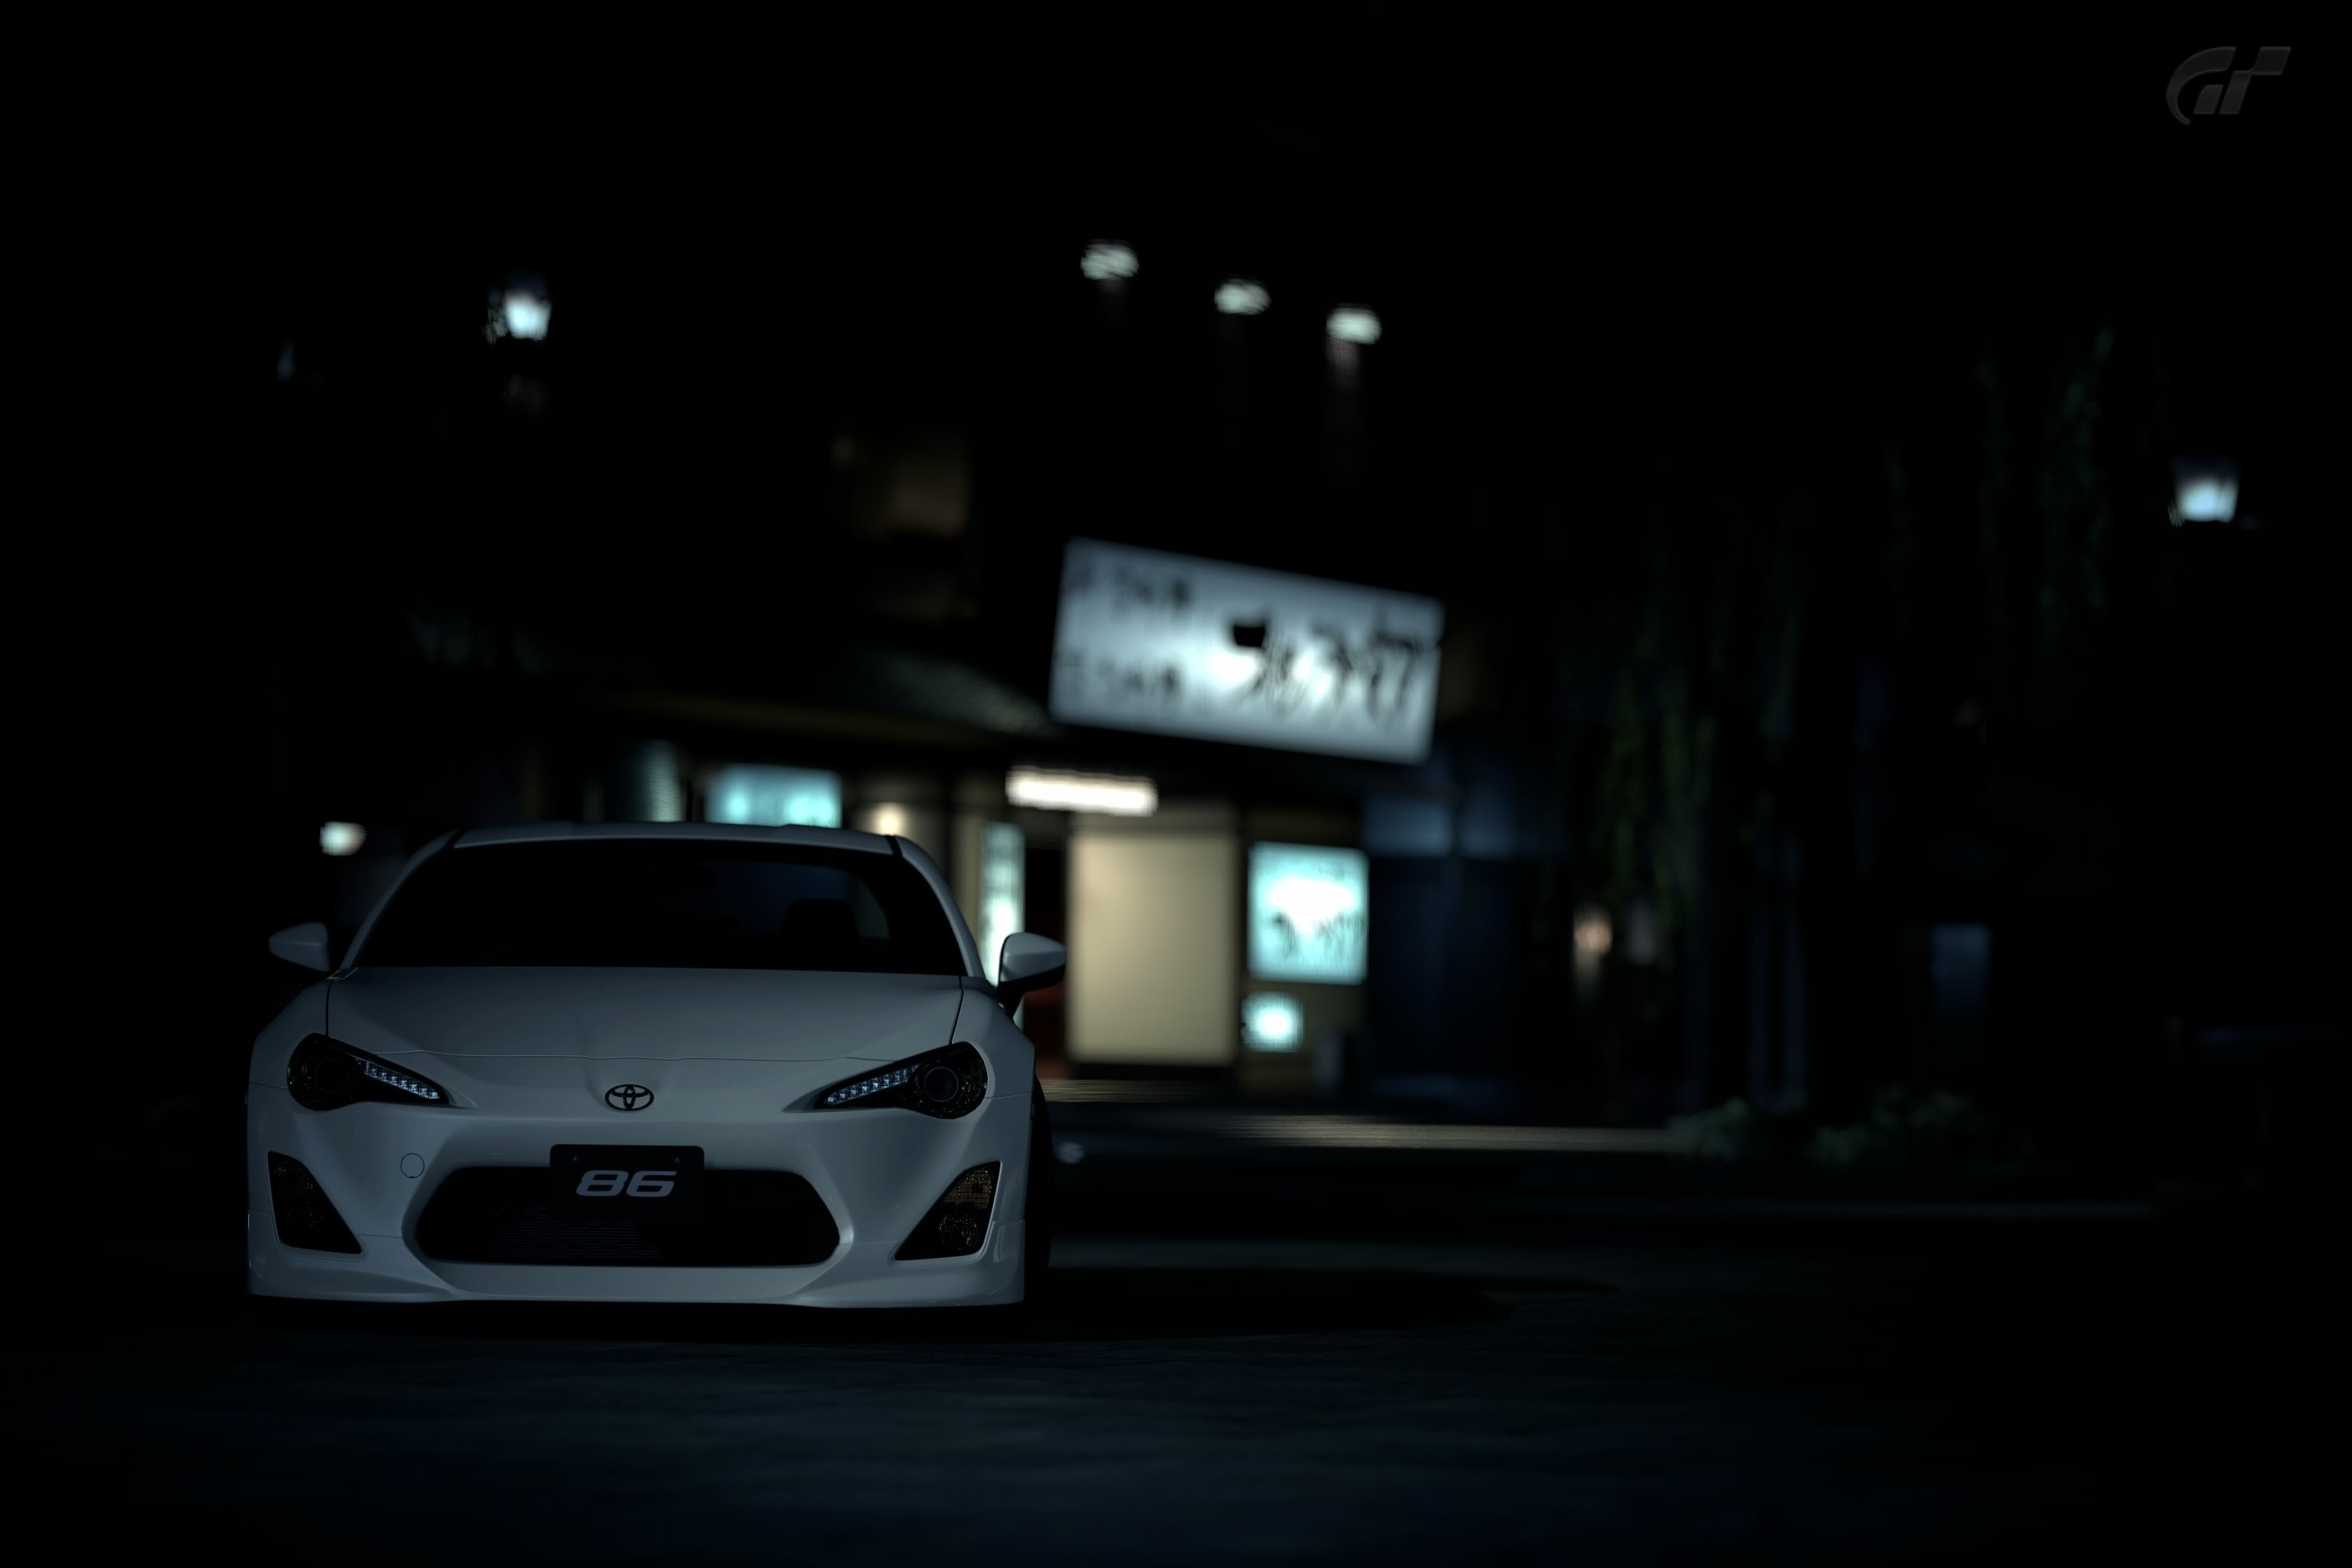 GT5 Pictures Kyoto-Gion_1